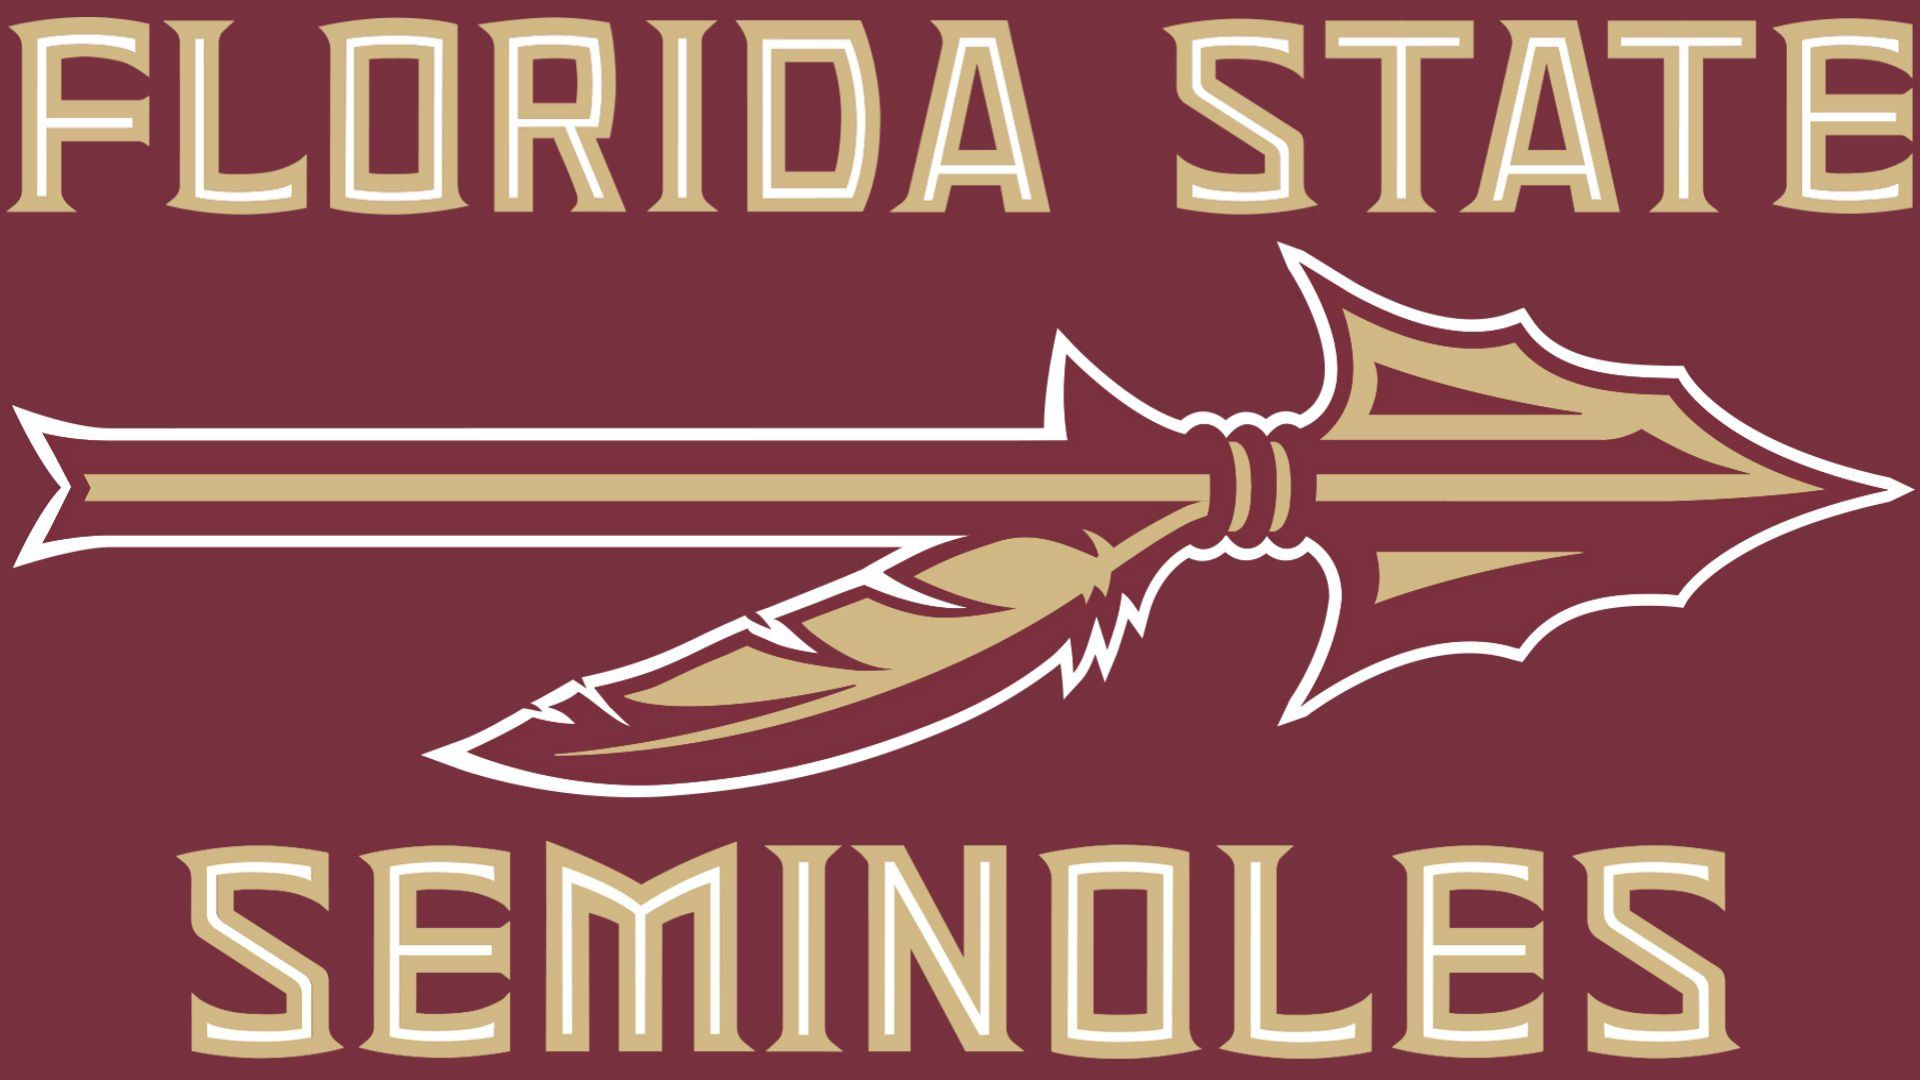 Florida State Wallpapers Wallpapers Backgrounds Images Art Florida State Seminoles Florida State Seminoles Football Florida State